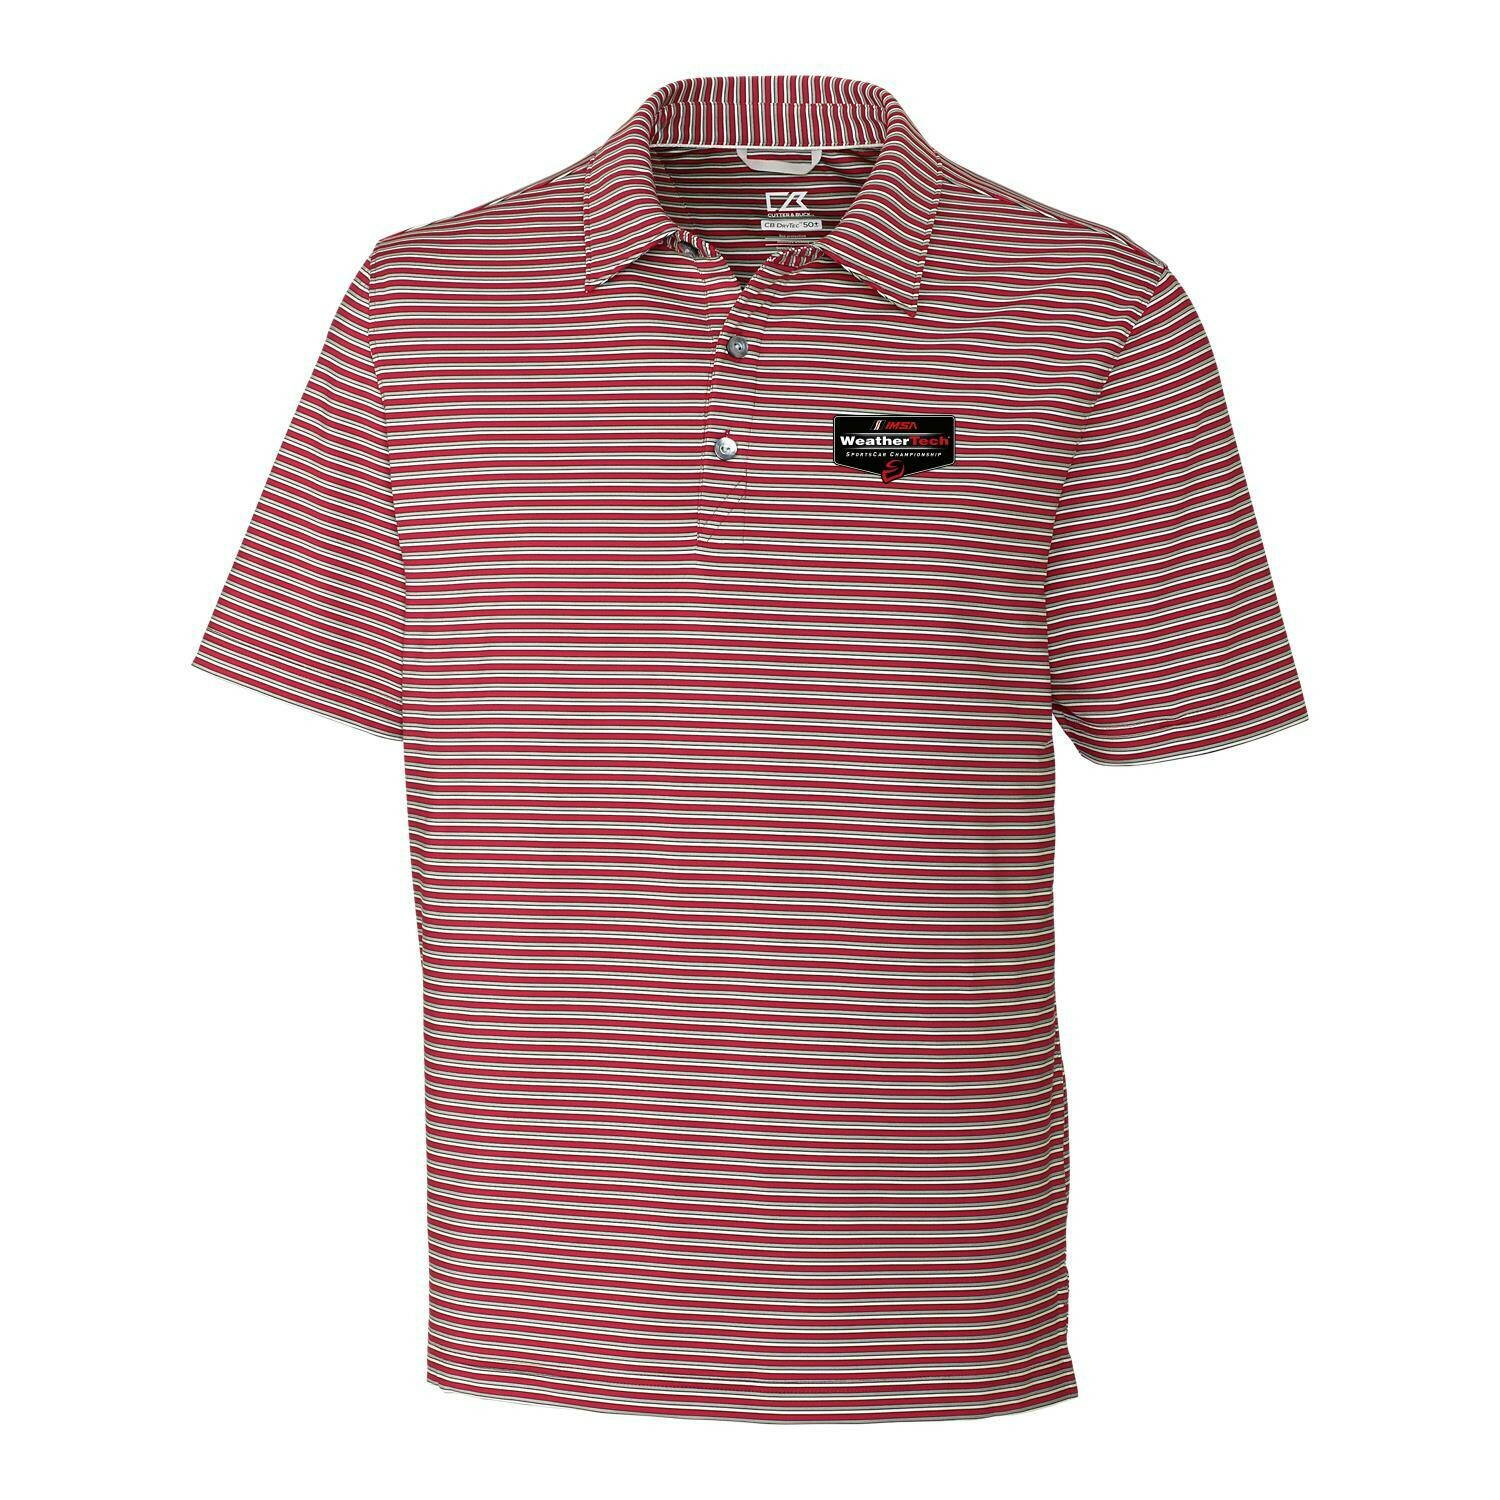 WeatherTech Division Stripe Polo Cardinal Red/Polished